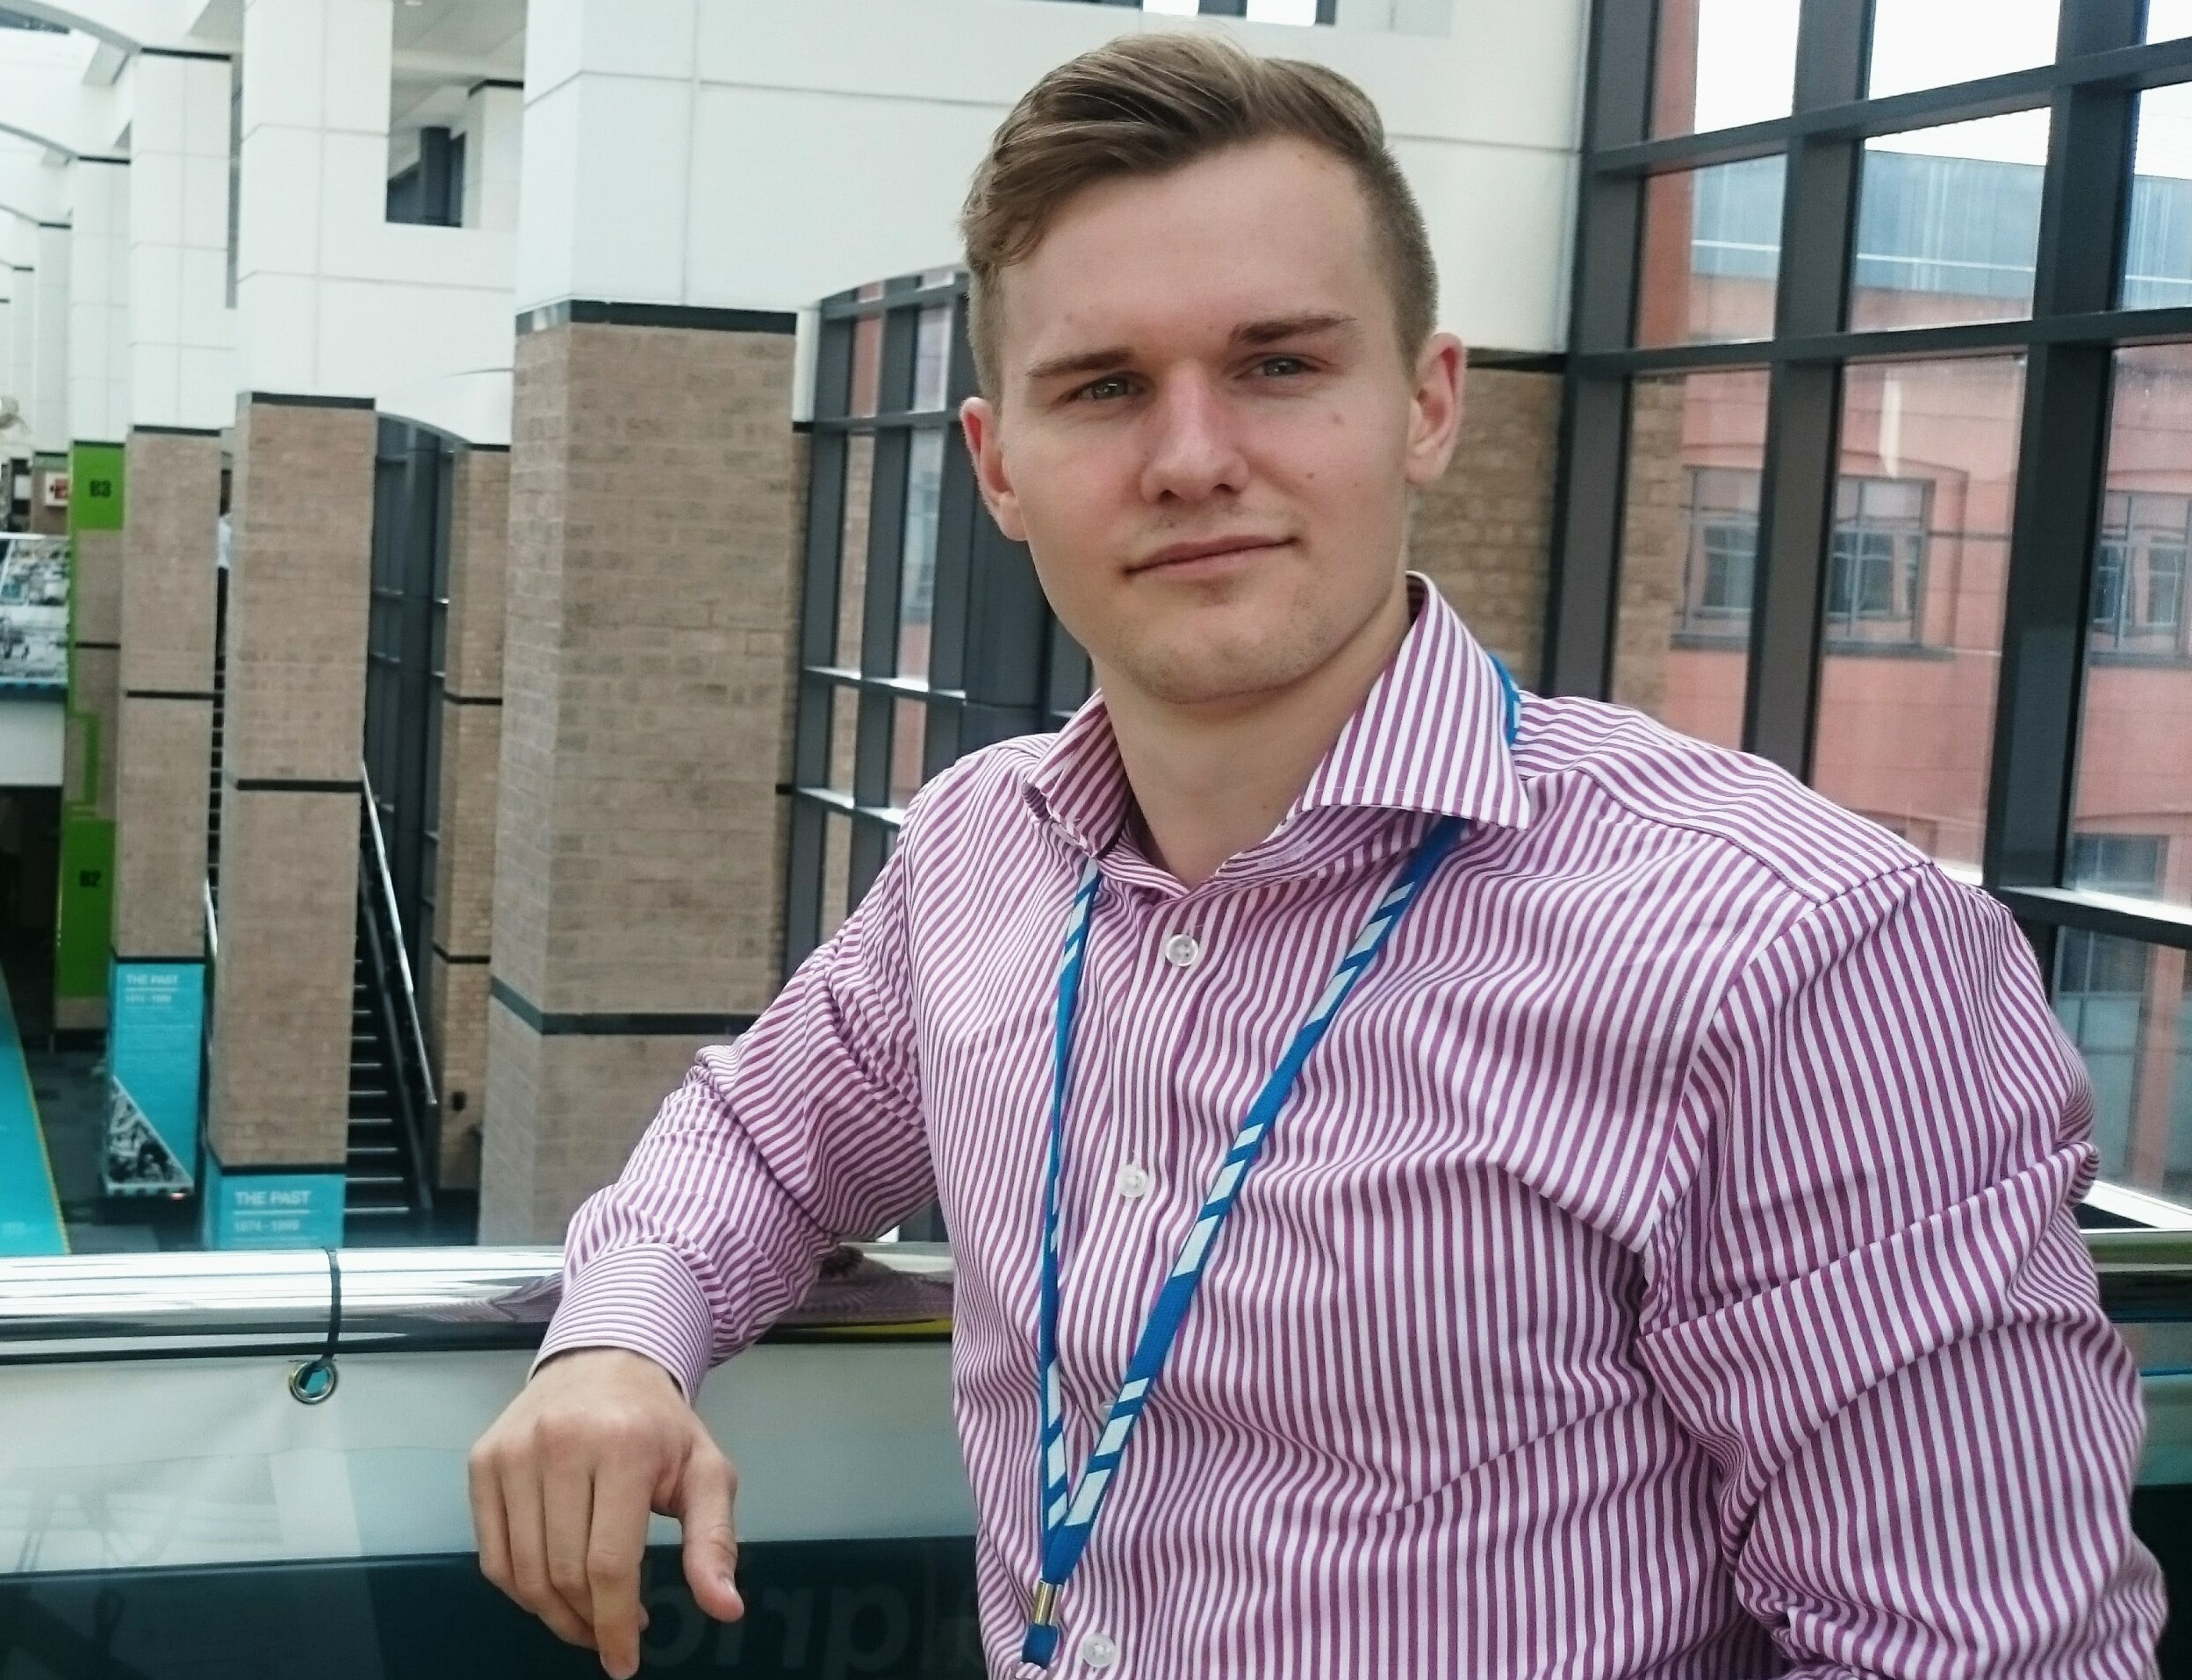 INTERVIEW: Josh White a Digital Apprentice with IBM